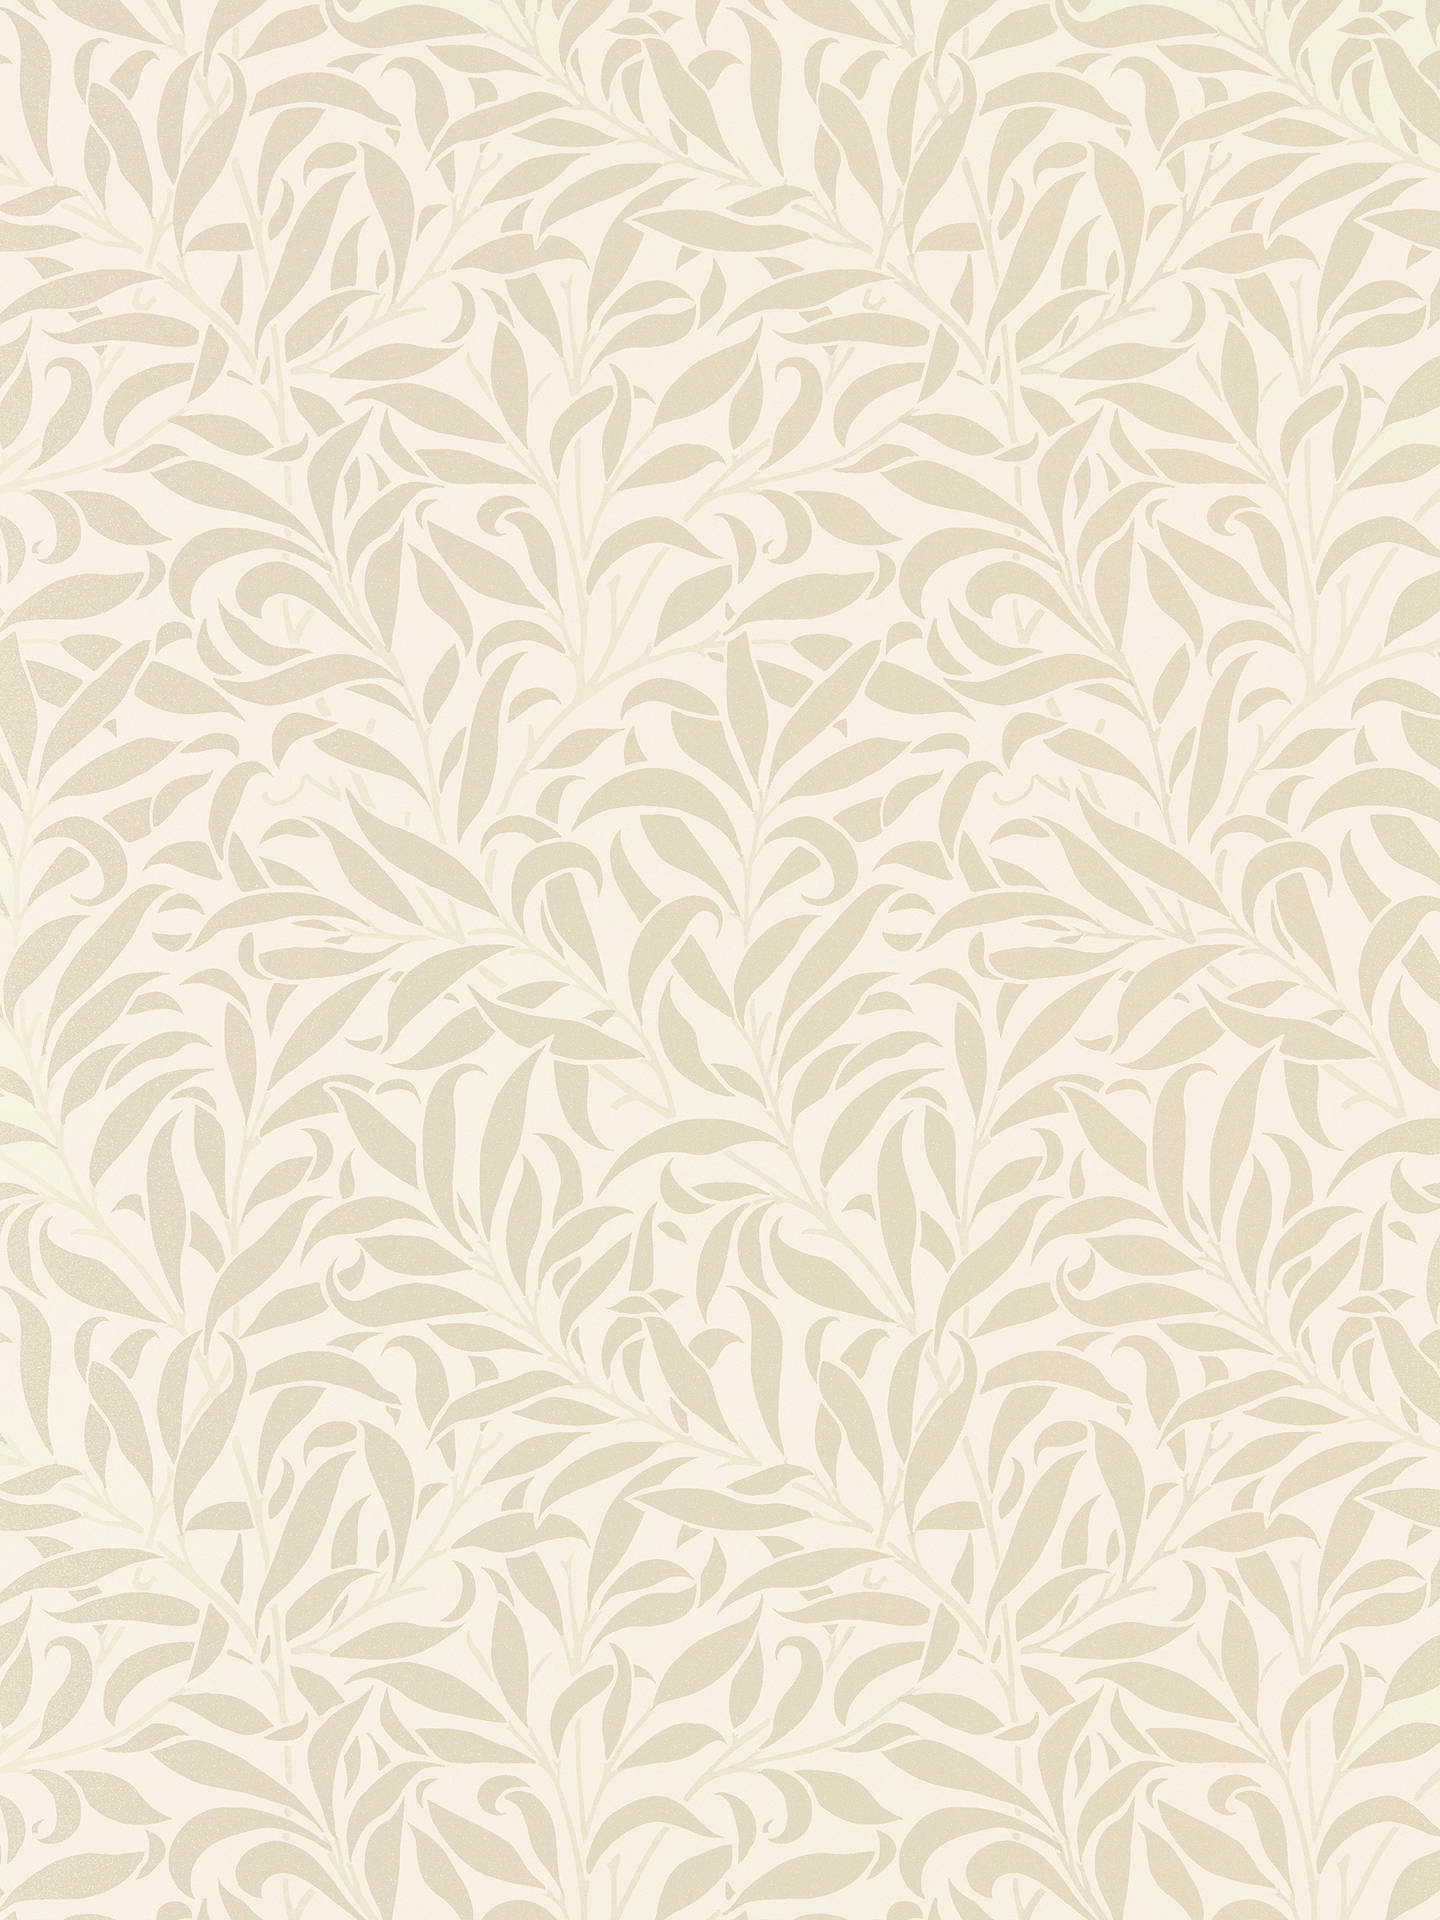 BuyMorris & Co. Pure Willow Bough Wallpaper, Ivory / Pearl DMPU216022 Online at johnlewis.com